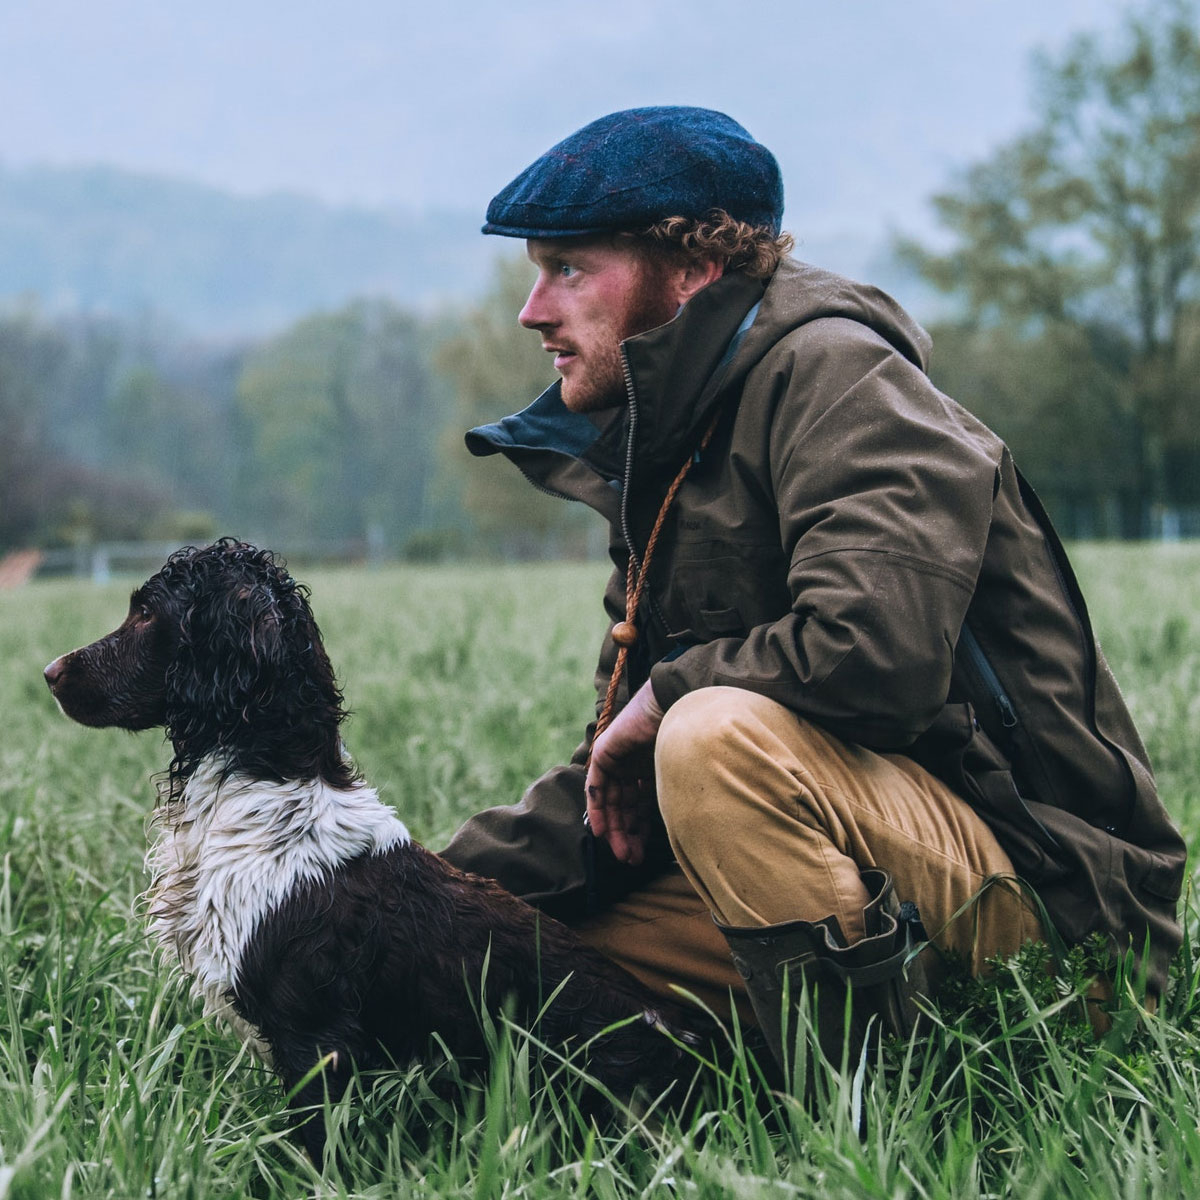 Filson 3-Layer Field Jacket Brown, perfect jacket in any weather conditions